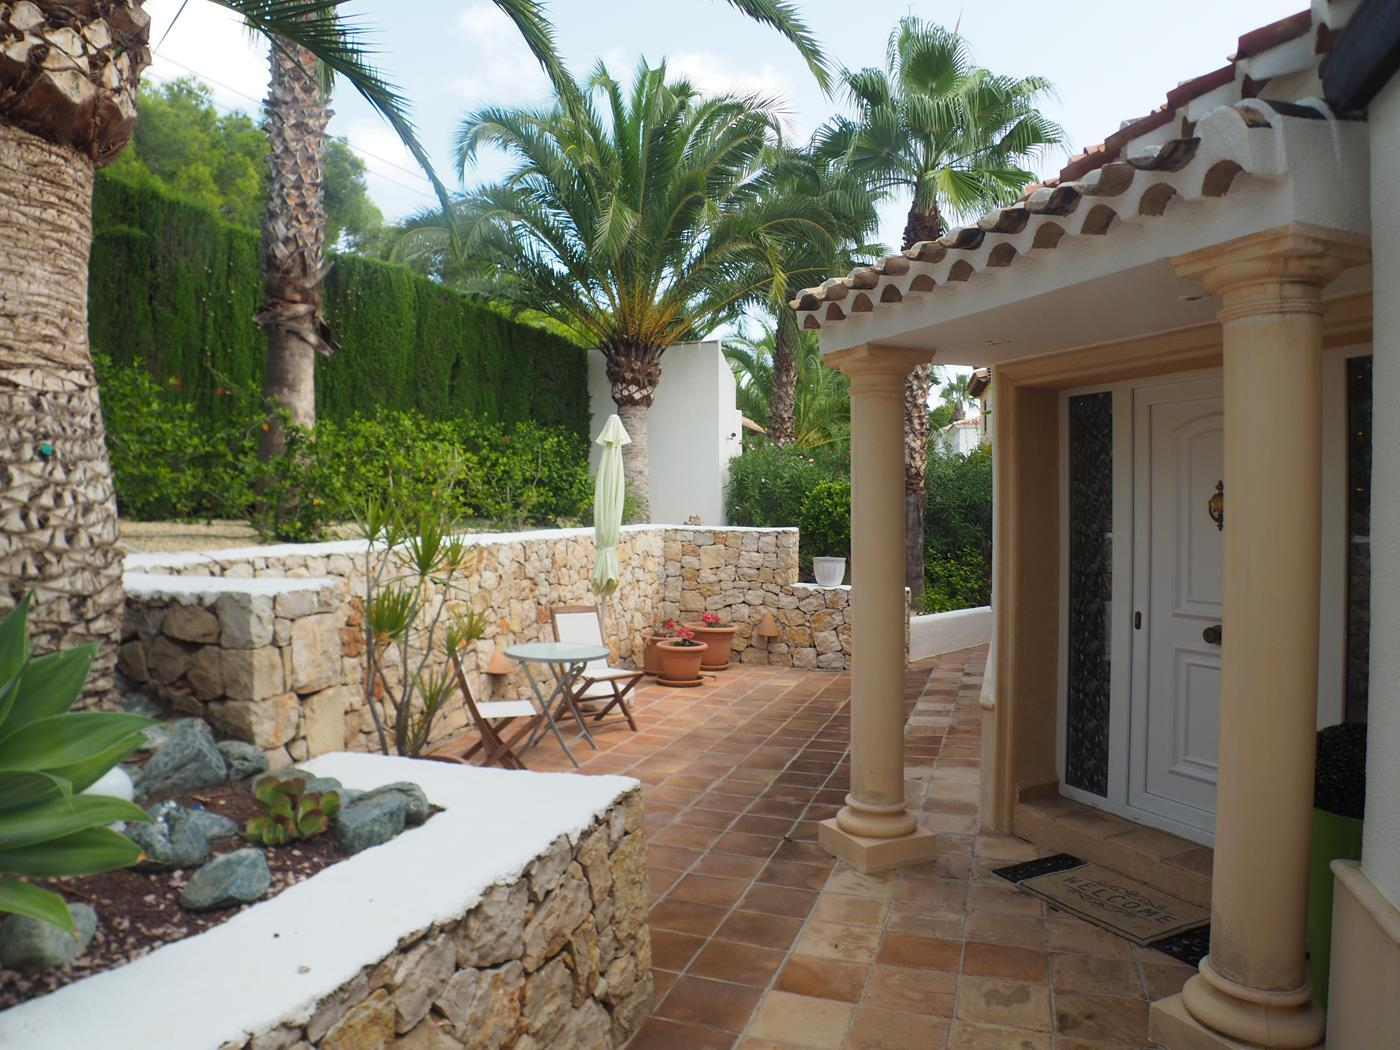 Fotogallerij - 6 - Exceptional homes in the Costa Blanca. Unparalleled Service. Exceptional properties in the Costa Blanca